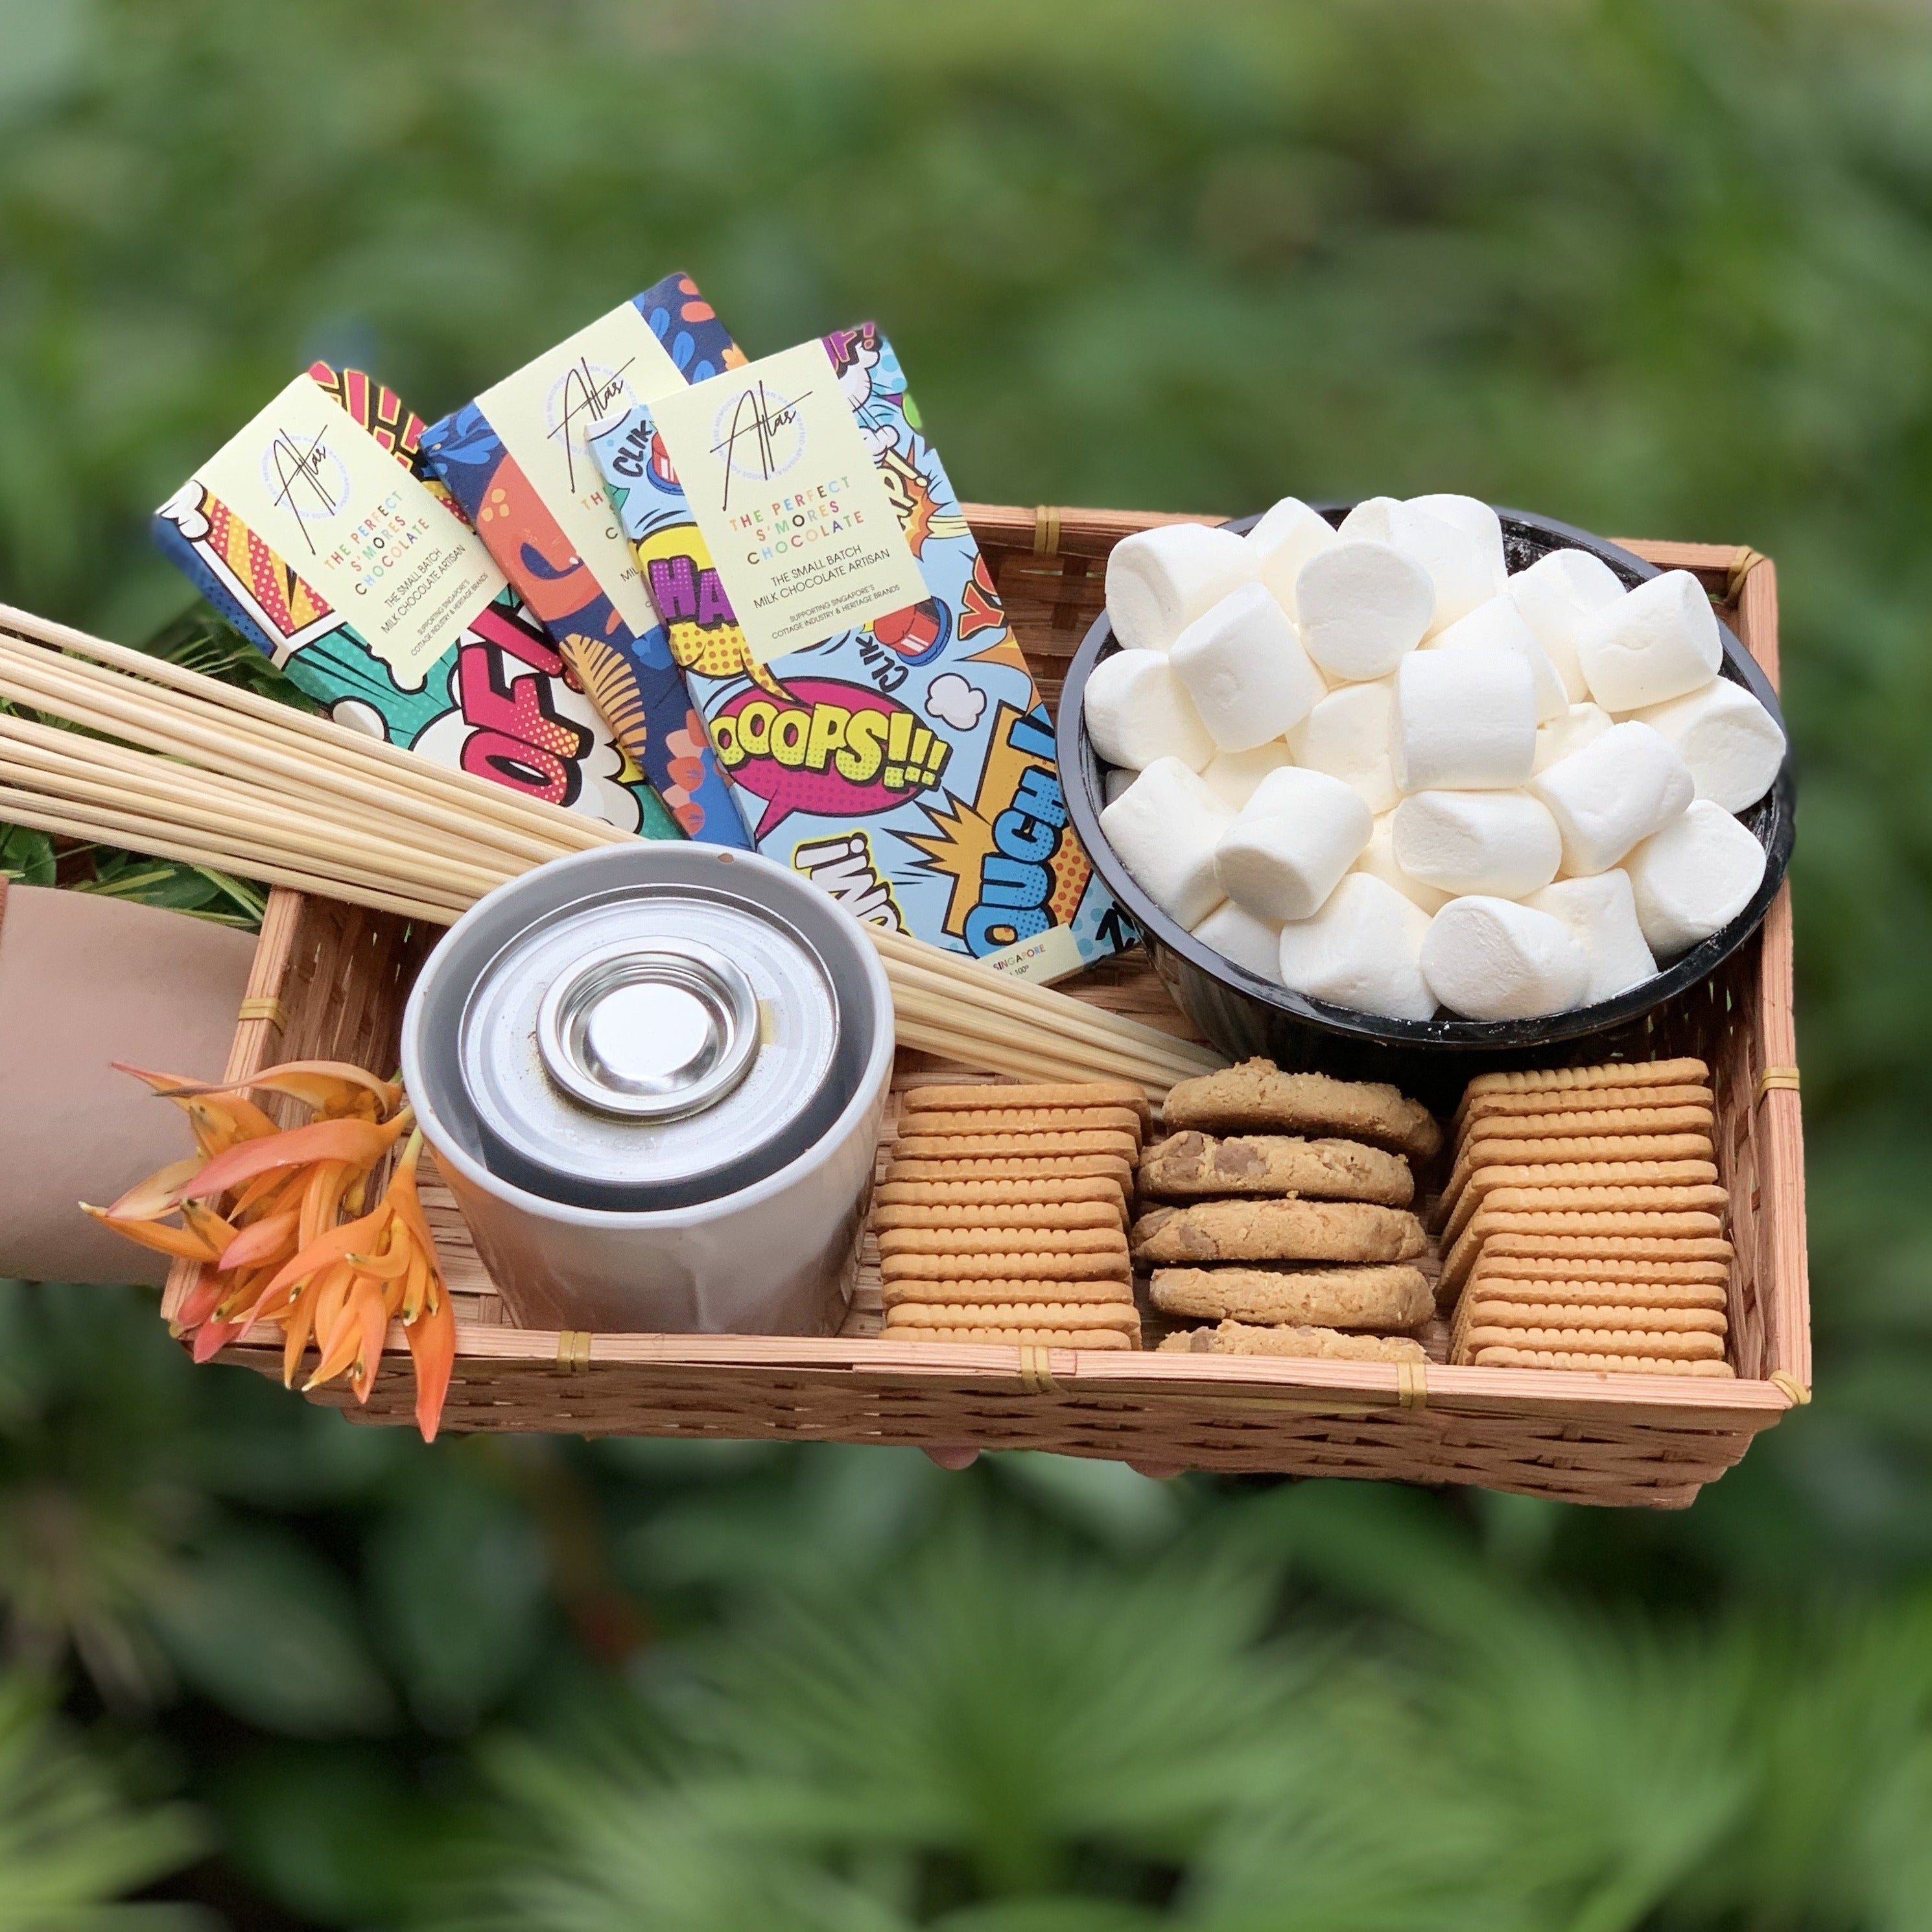 The Perfect S'mores Picnic Basket (4-6 Pax)